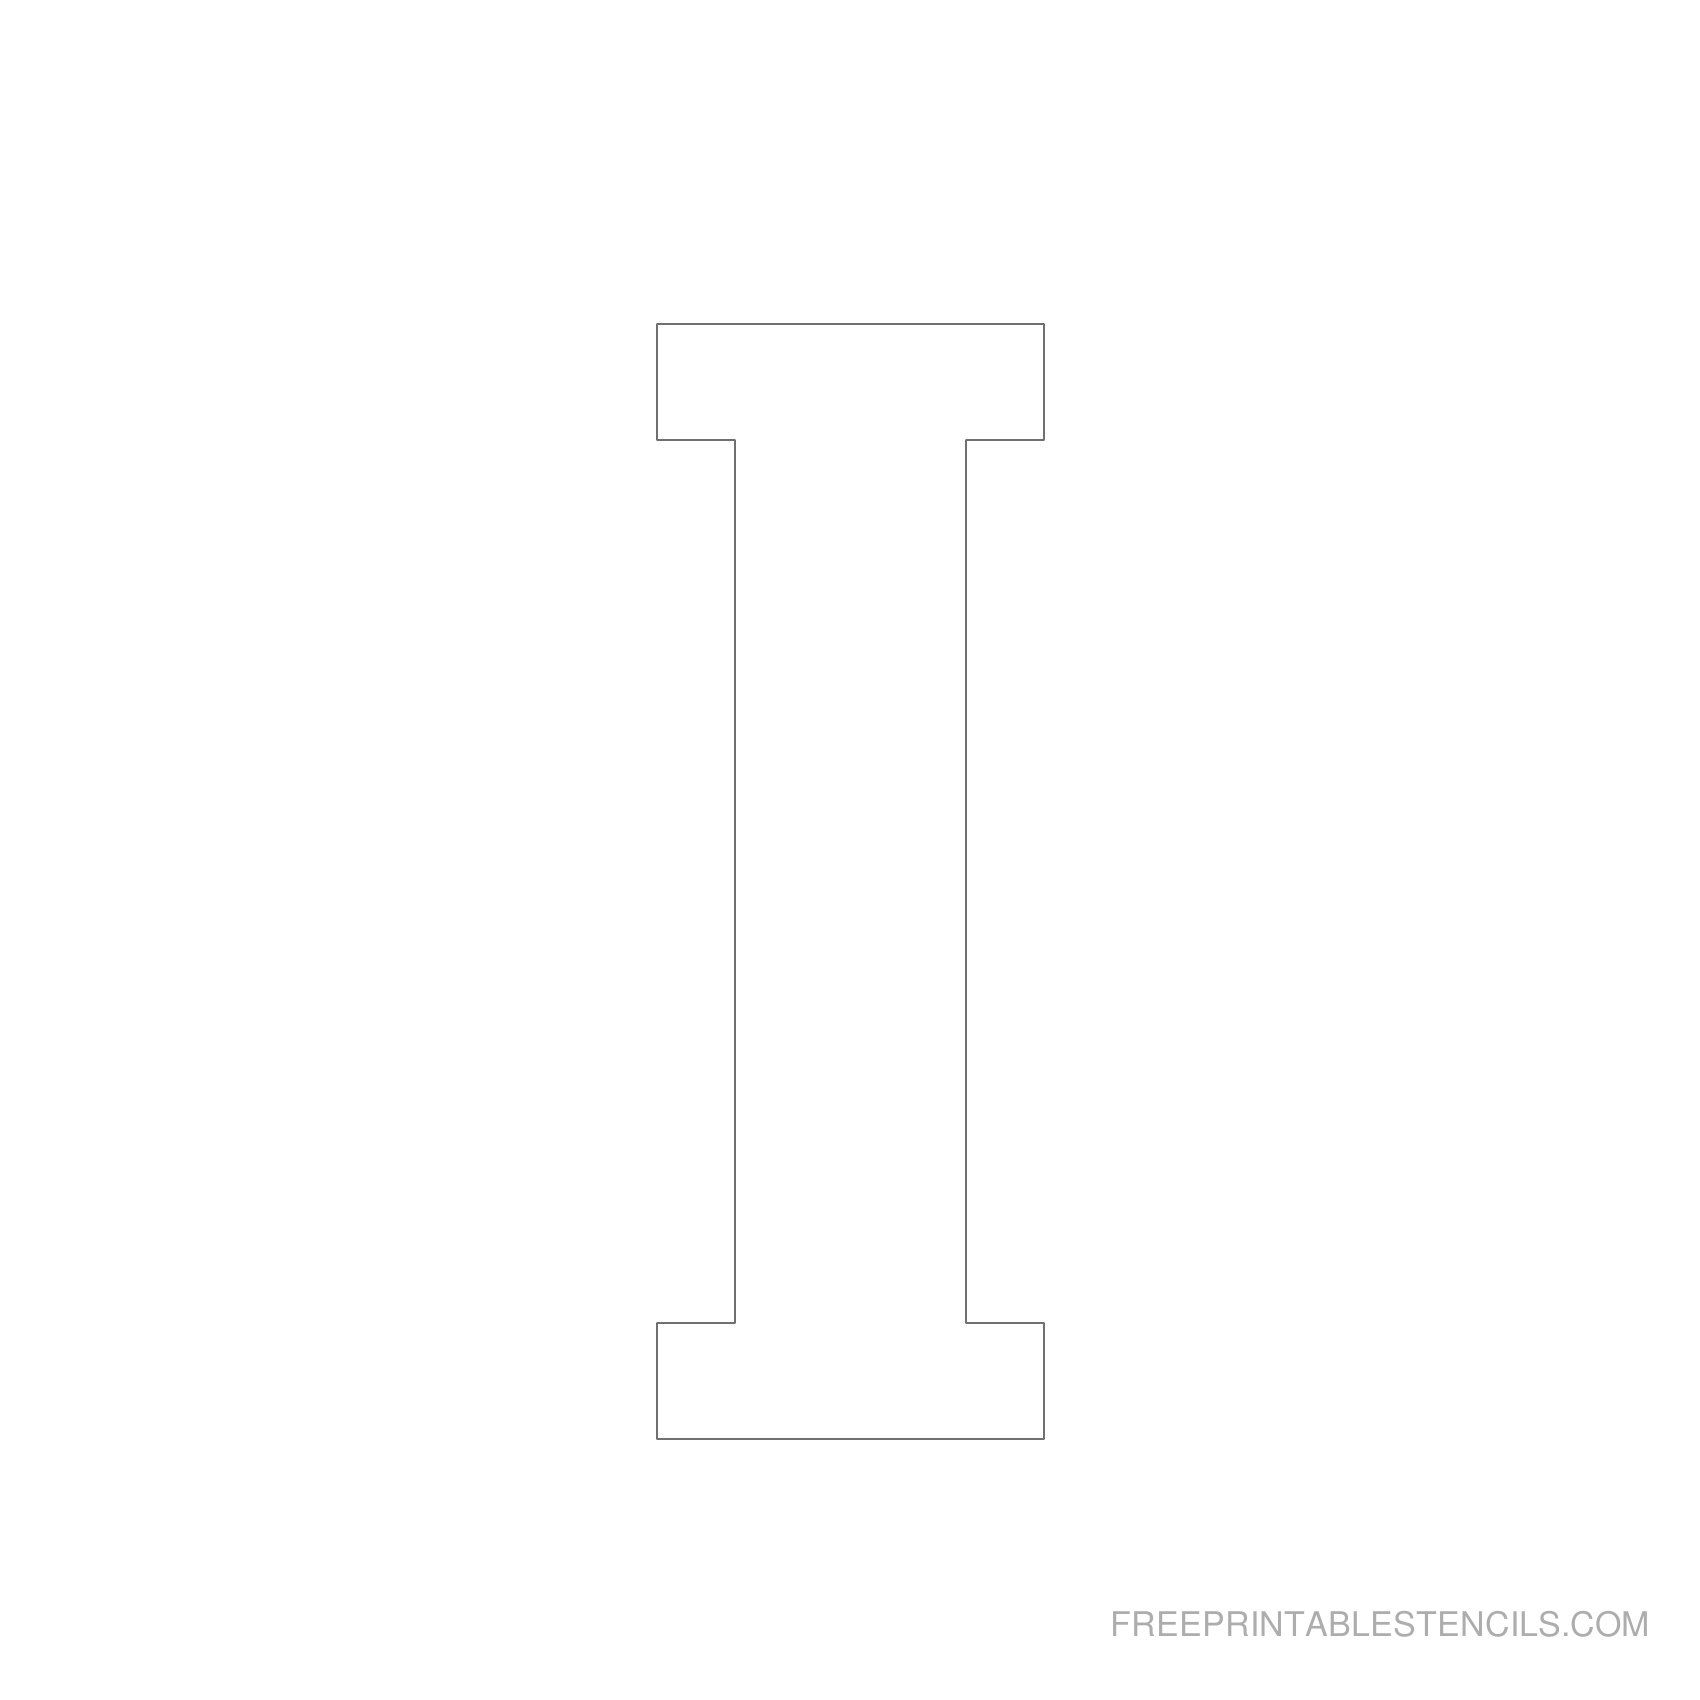 It is a graphic of Free Printable Letter Stencils intended for elegant